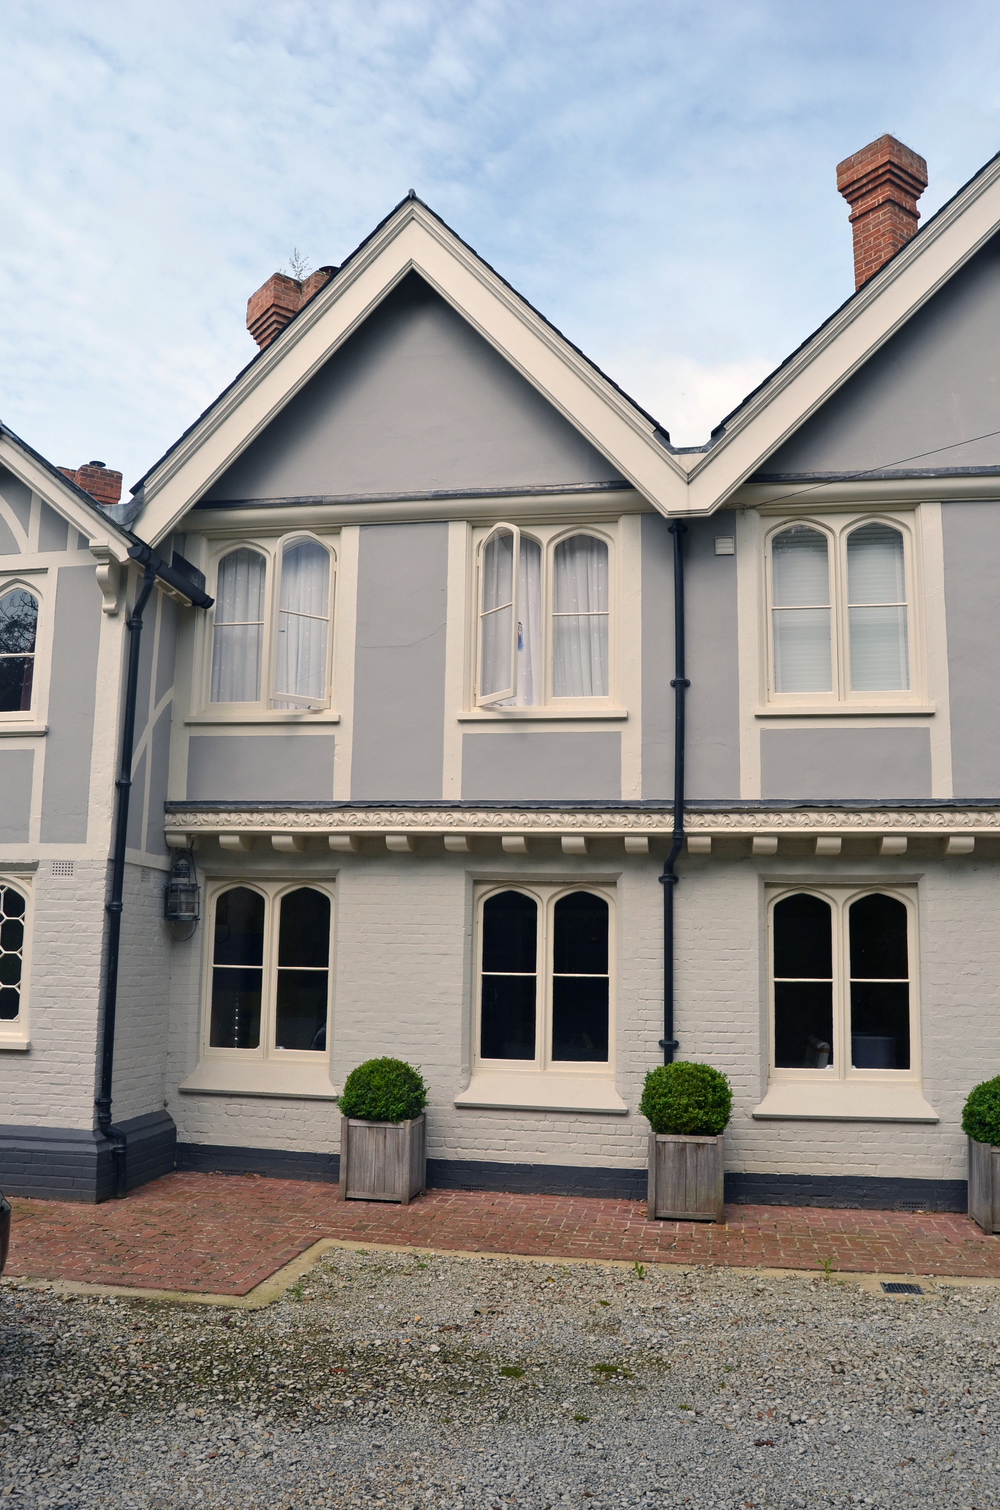 The windows and doors were retained and refurbished in the original style and the property has been painted in more sympathetic colours to provide a soft appearance.